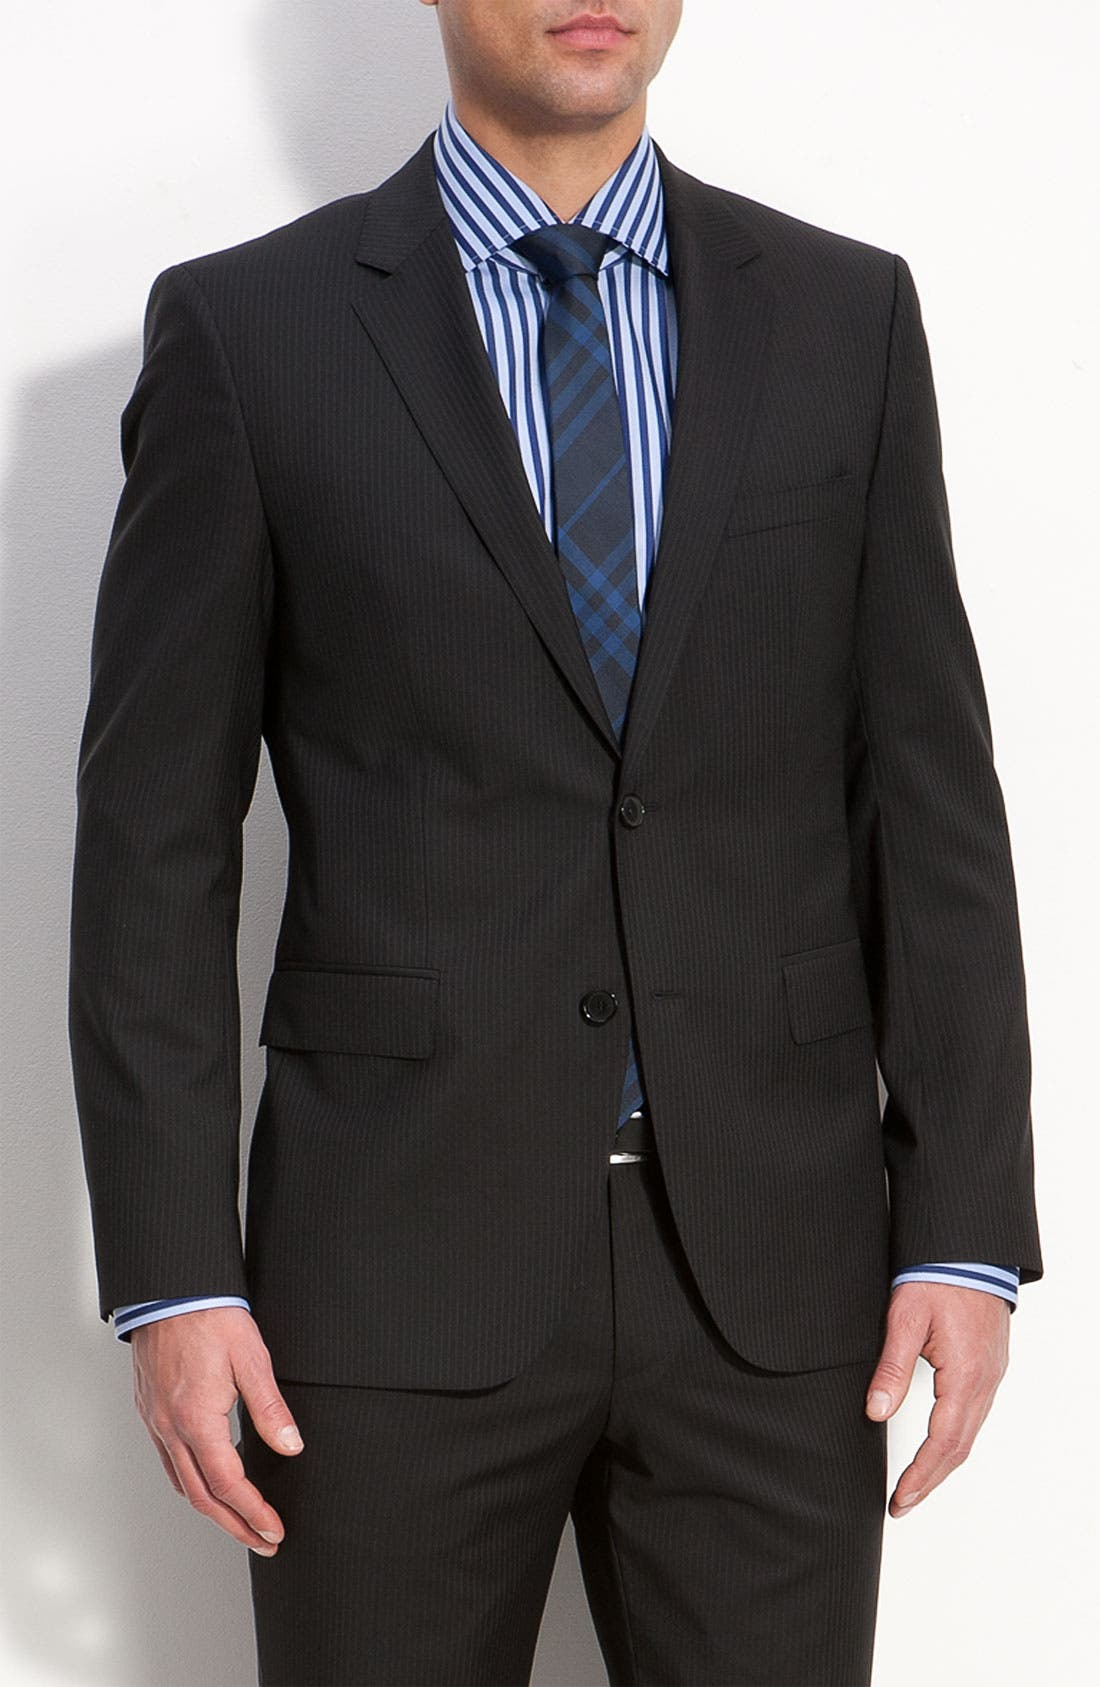 Alternate Image 1 Selected - BOSS Black 'James/Sharp' Trim Fit Wool Suit